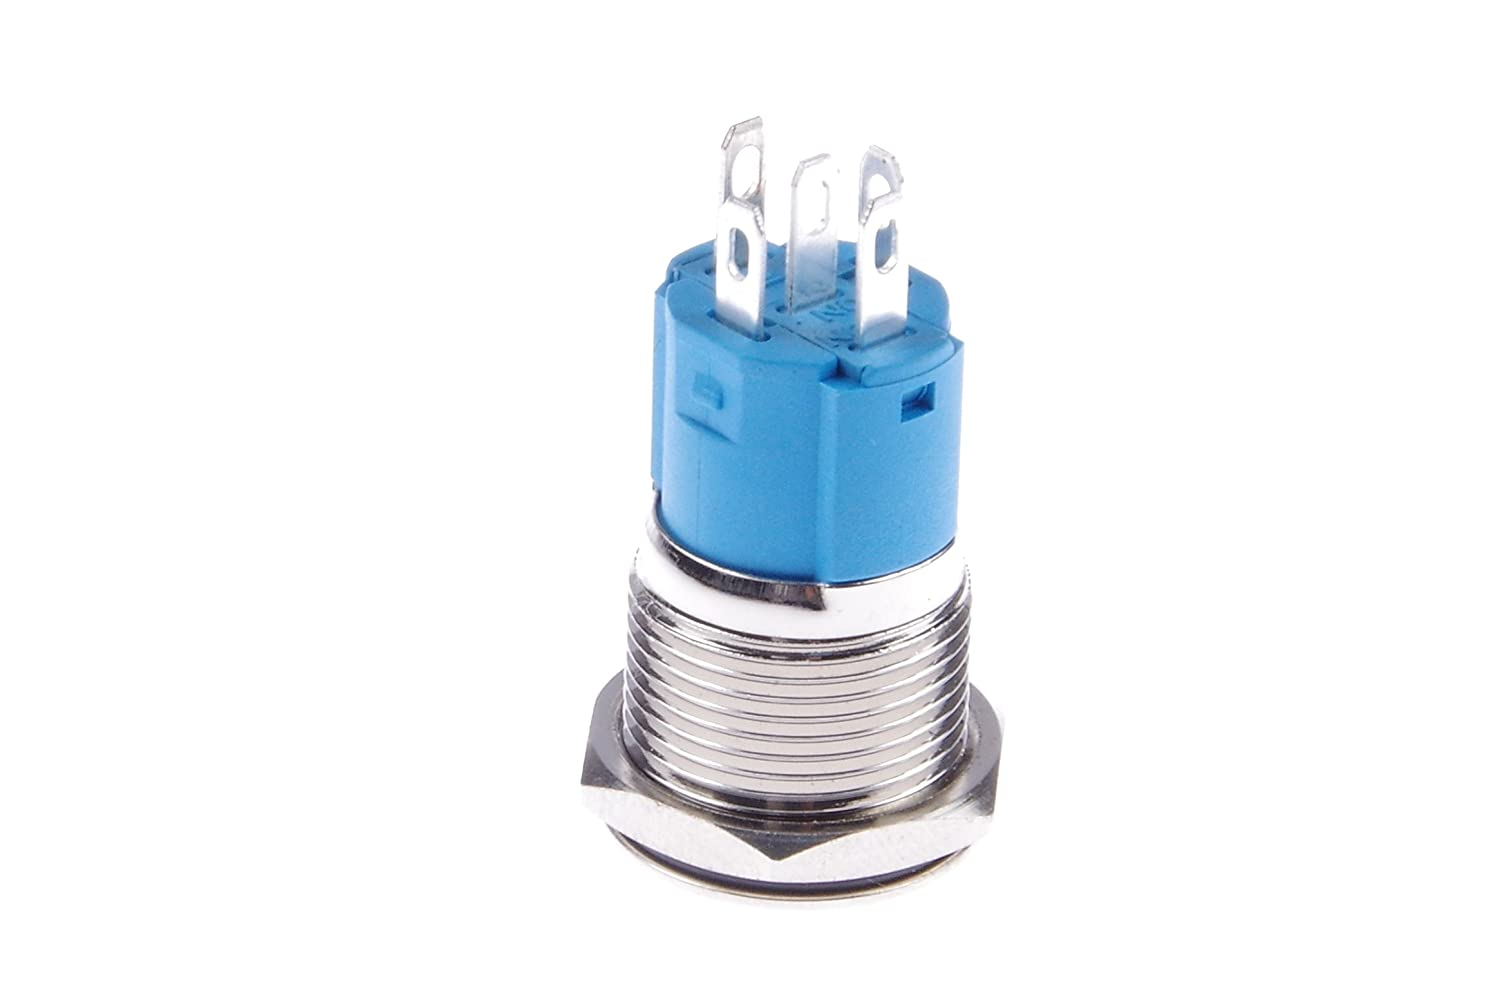 KNACRO DC 3-5V 16mm Metal Button Switch Self-Complex Blue Ring Glowing Angel Eyes Energy Saving LED Lamp Beads IP67 Waterproof,Explosionproof,Compression Resistant,Wear Resistant